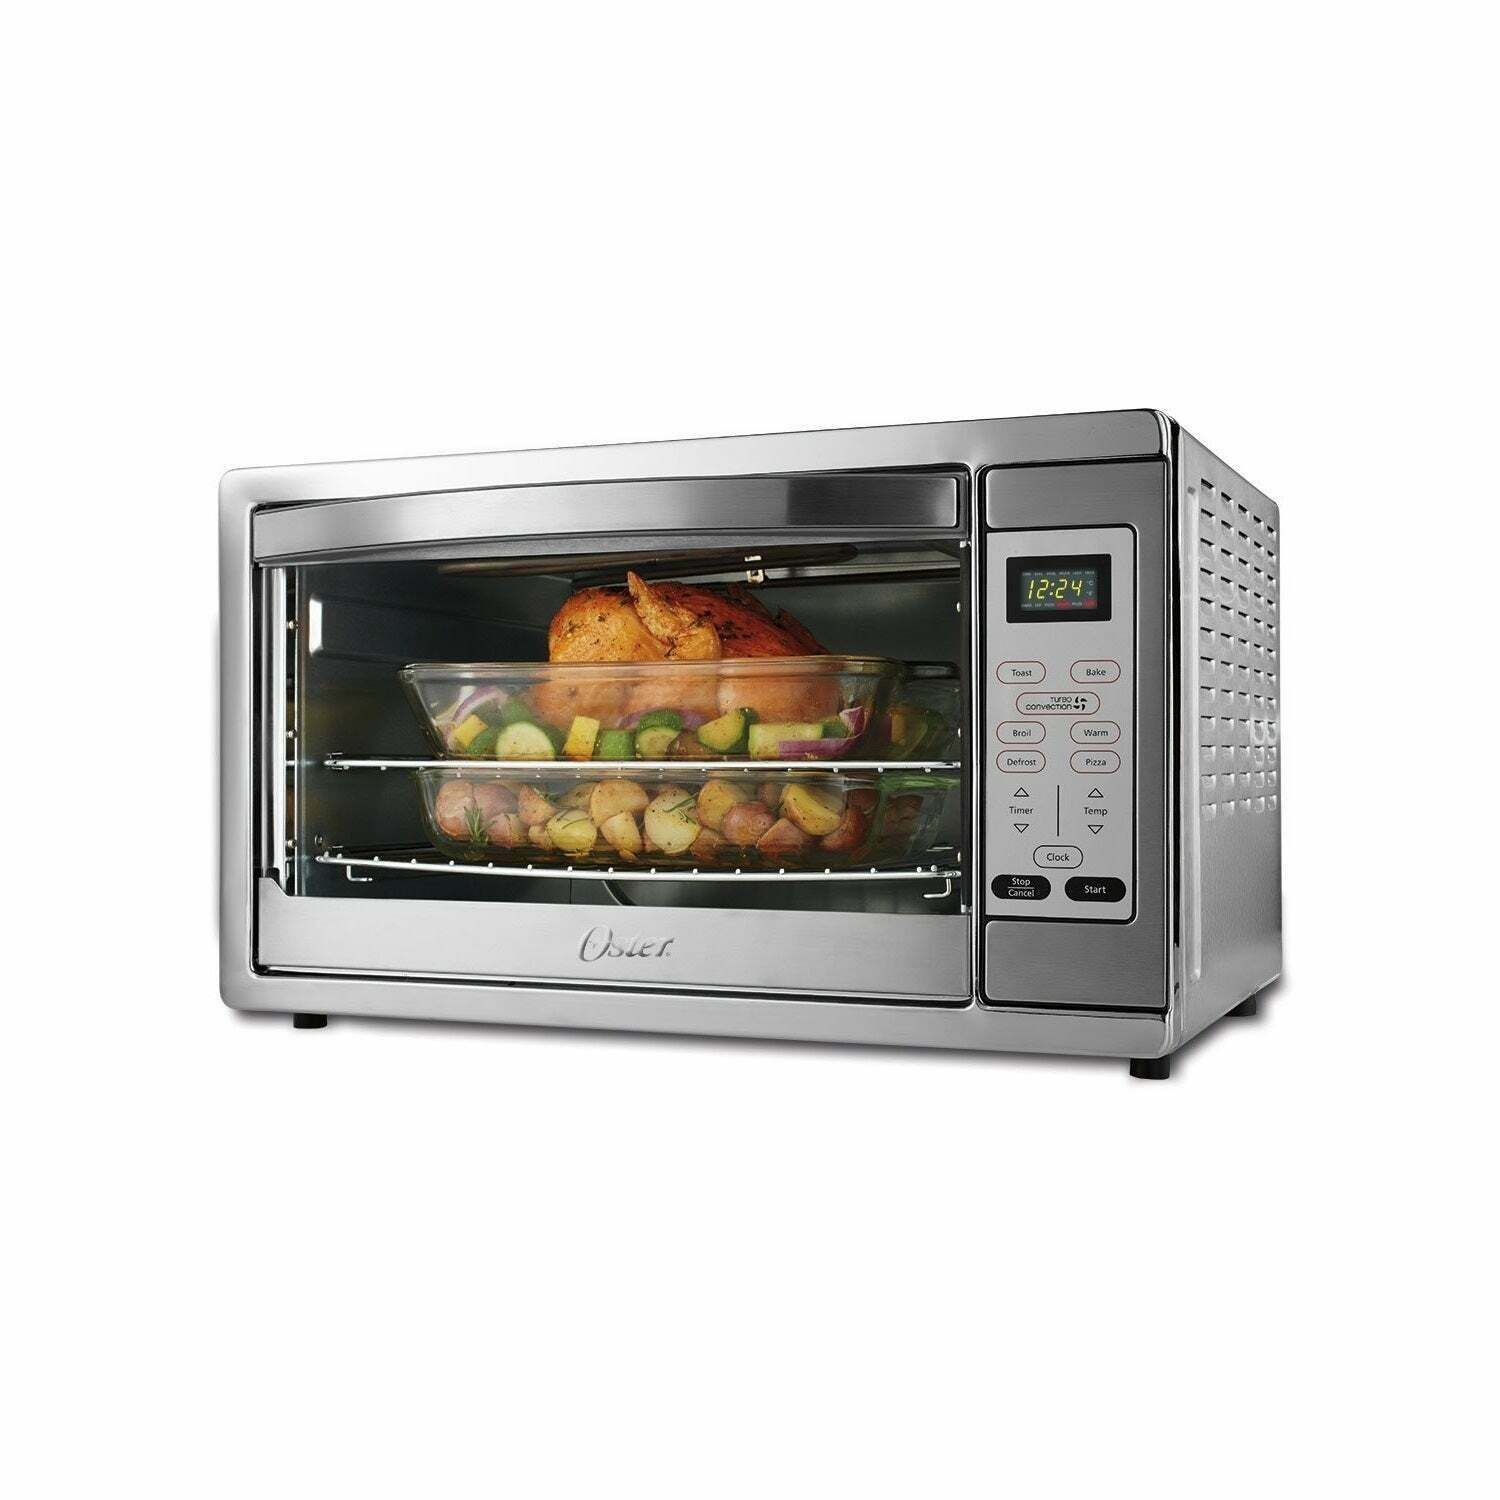 Oster Extra Large Digital Countertop Oven Ovens Ideas Of Ovens